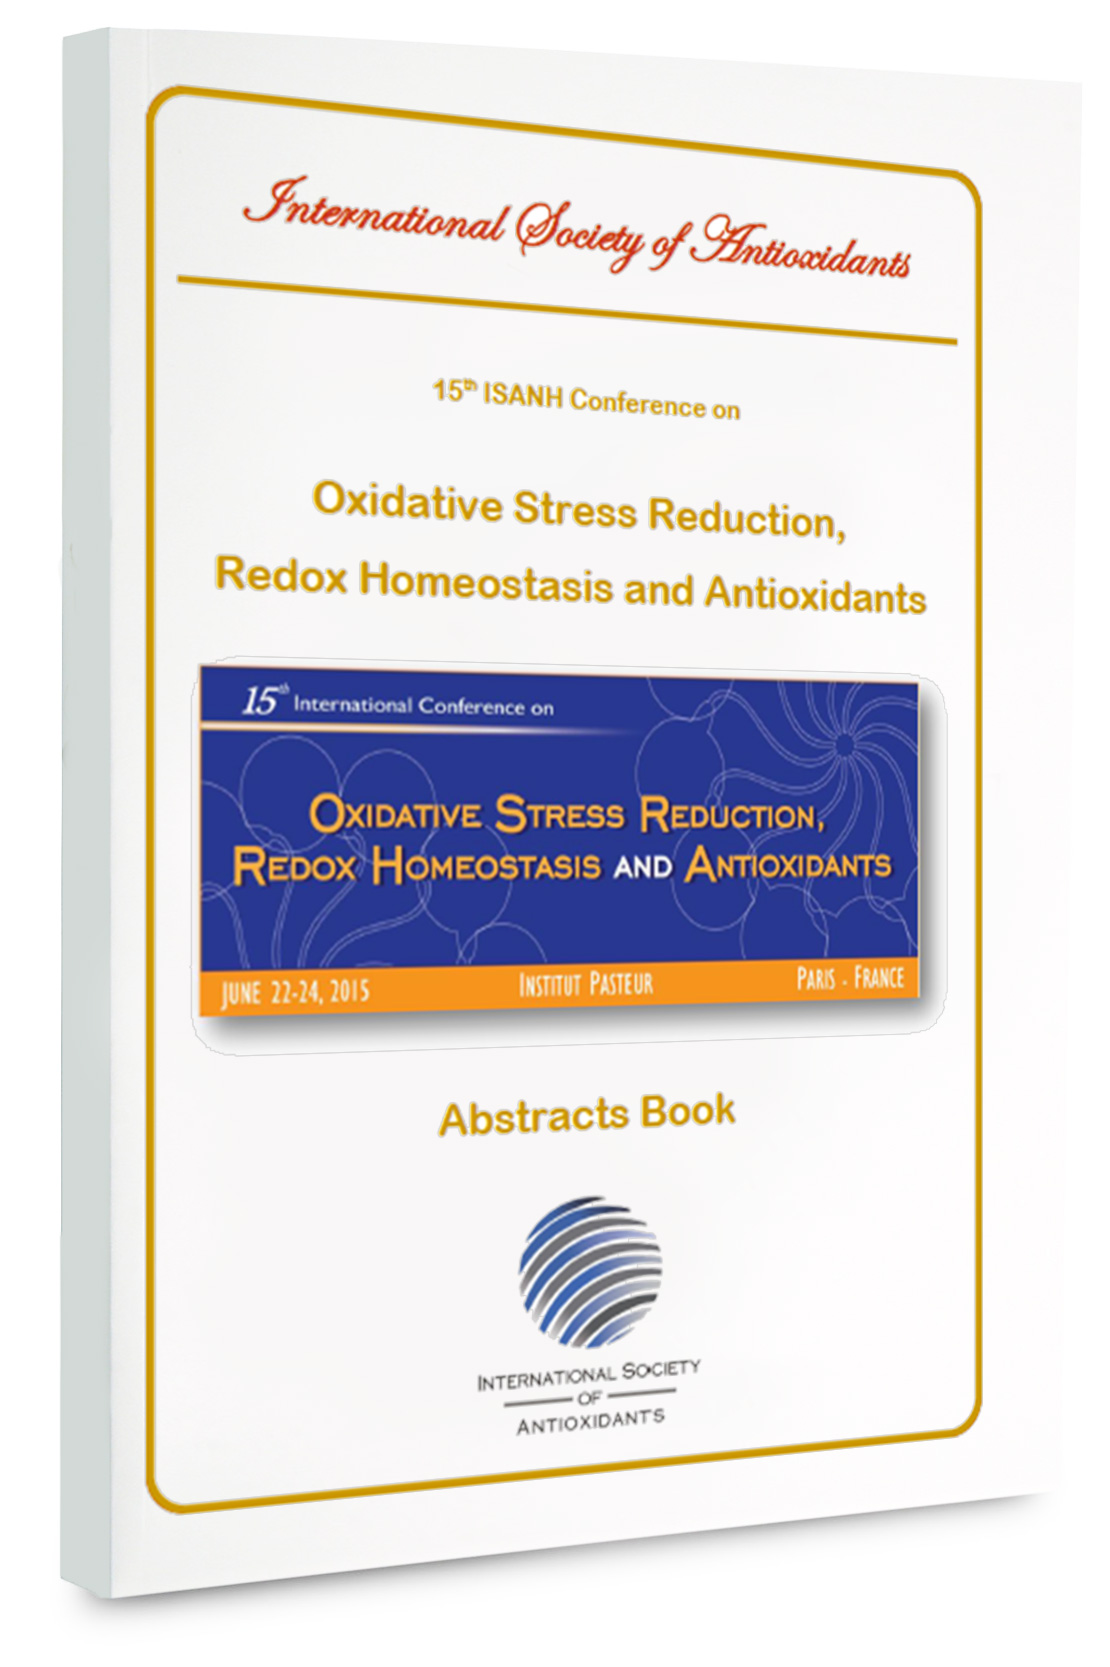 Paris Redox abstracts book 2015 is Available now